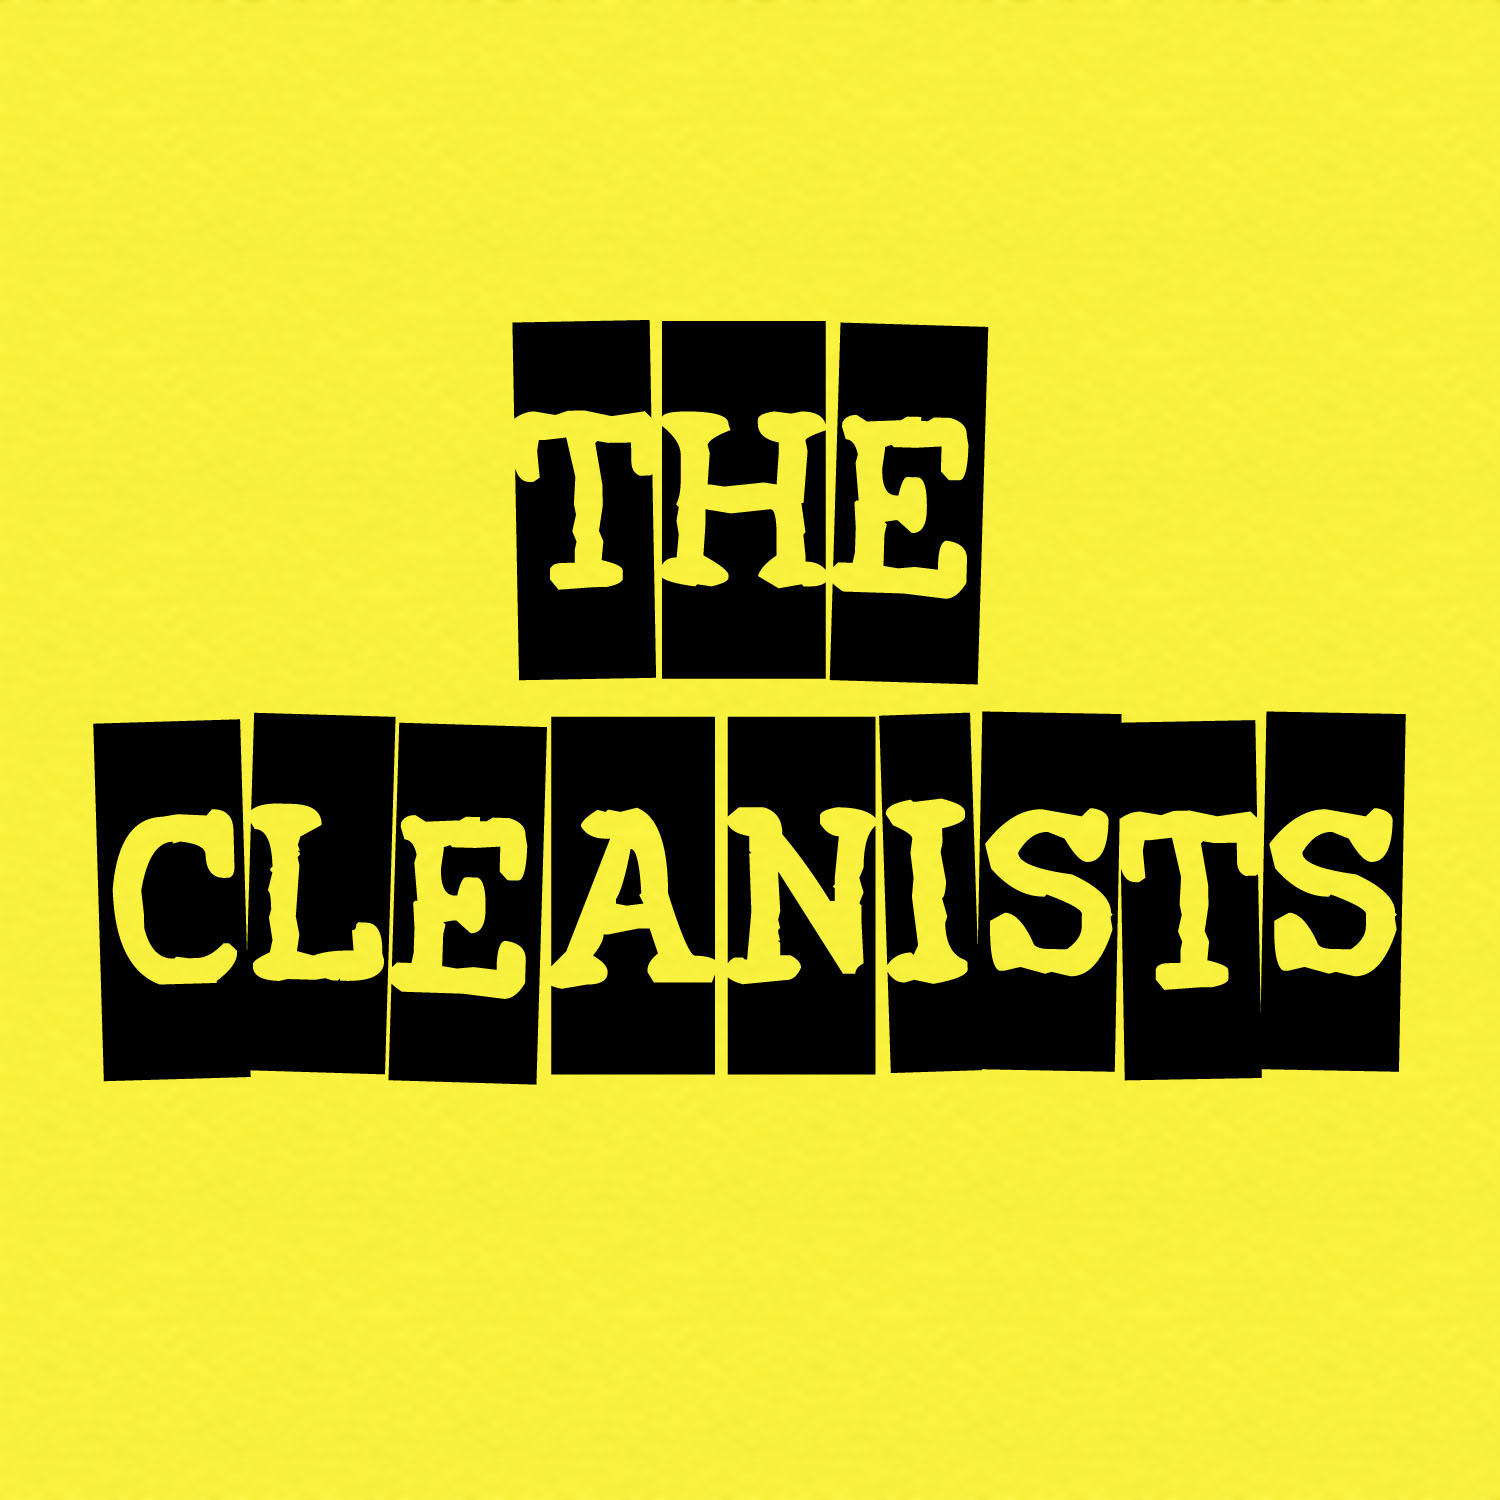 The Cleanists Logo